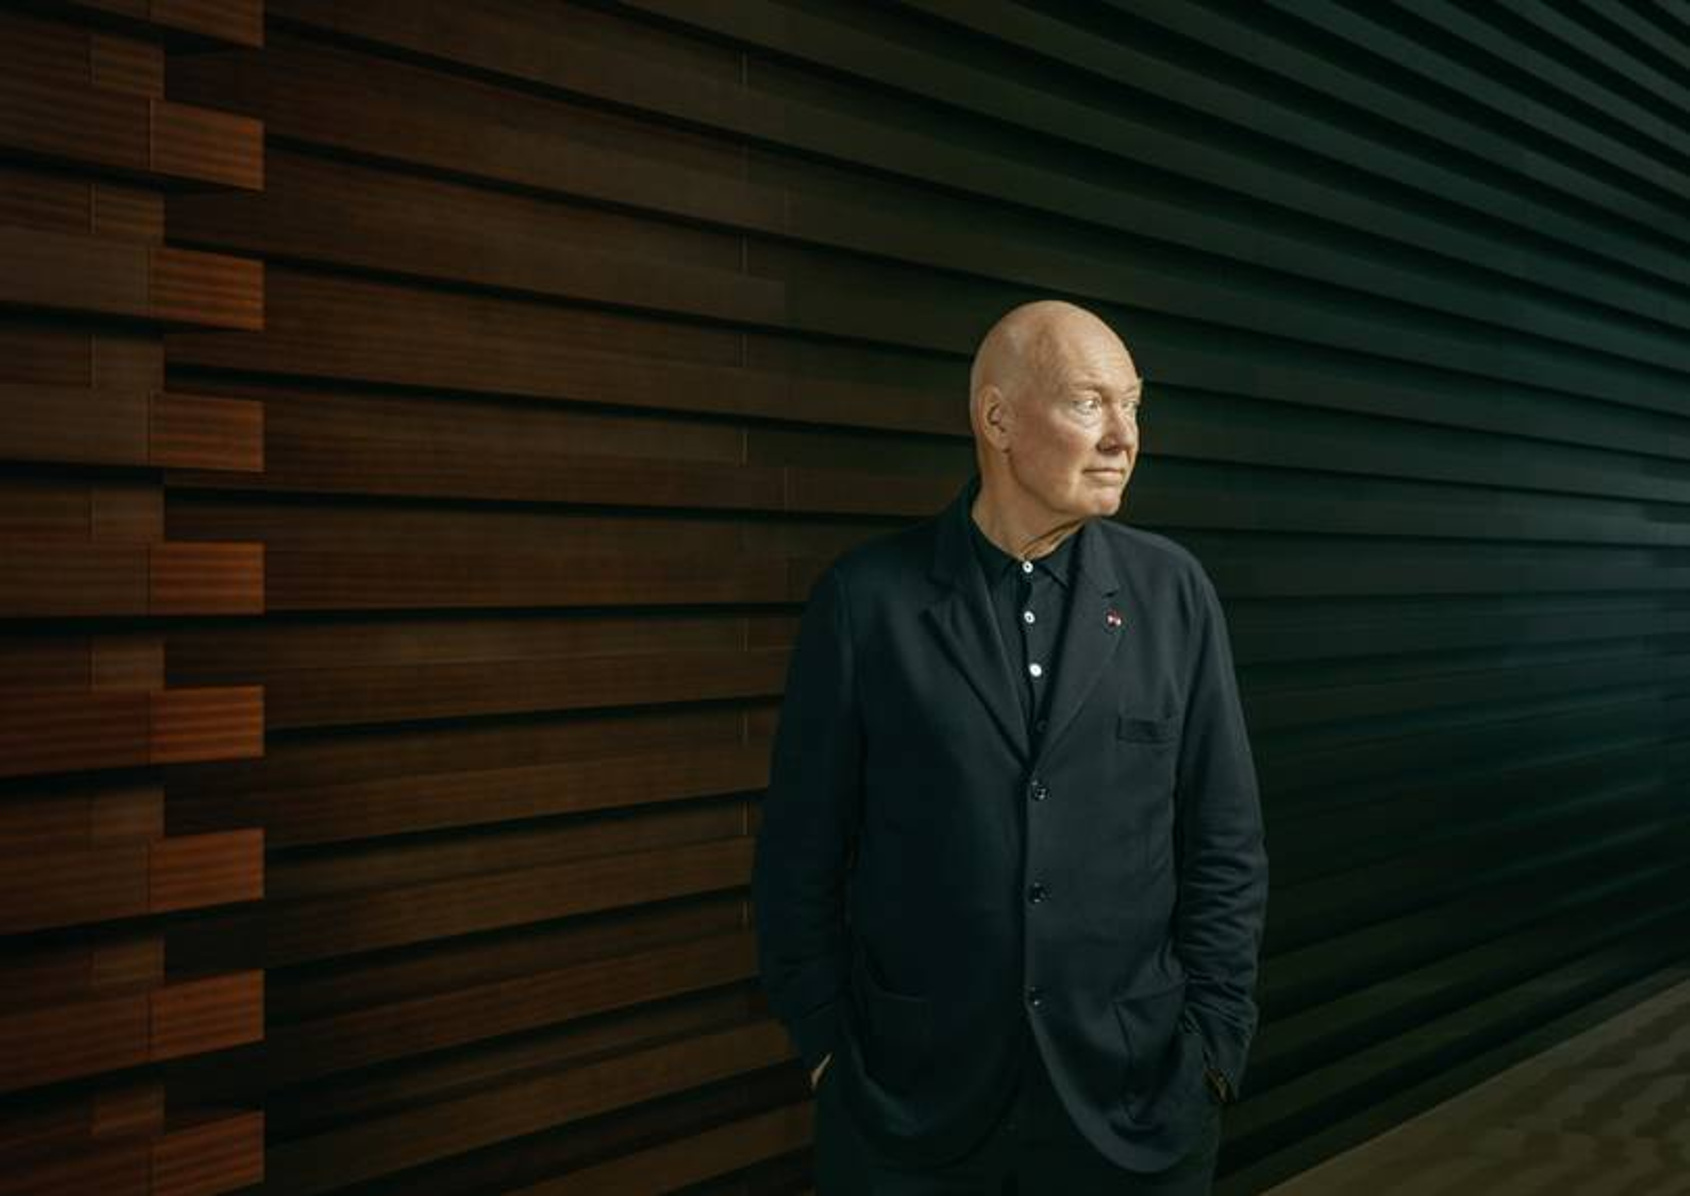 RECOMMENDED READING: Who needs sleep? LVMH watch boss Jean-Claude Biver shares his tips for productivity